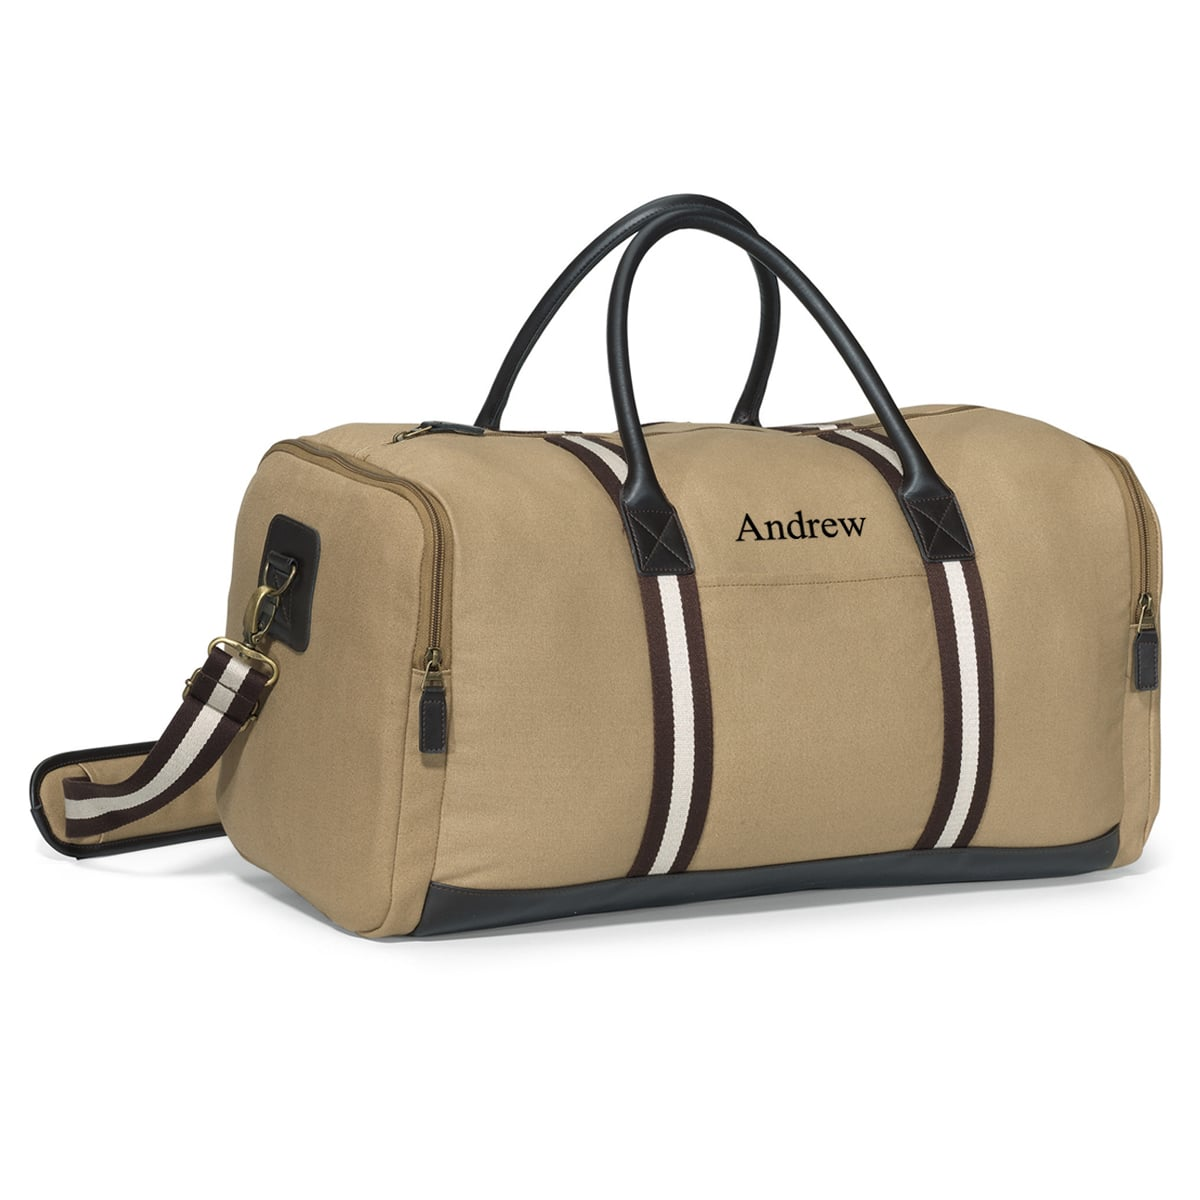 Personalized Heritage Supply Duffel Bag